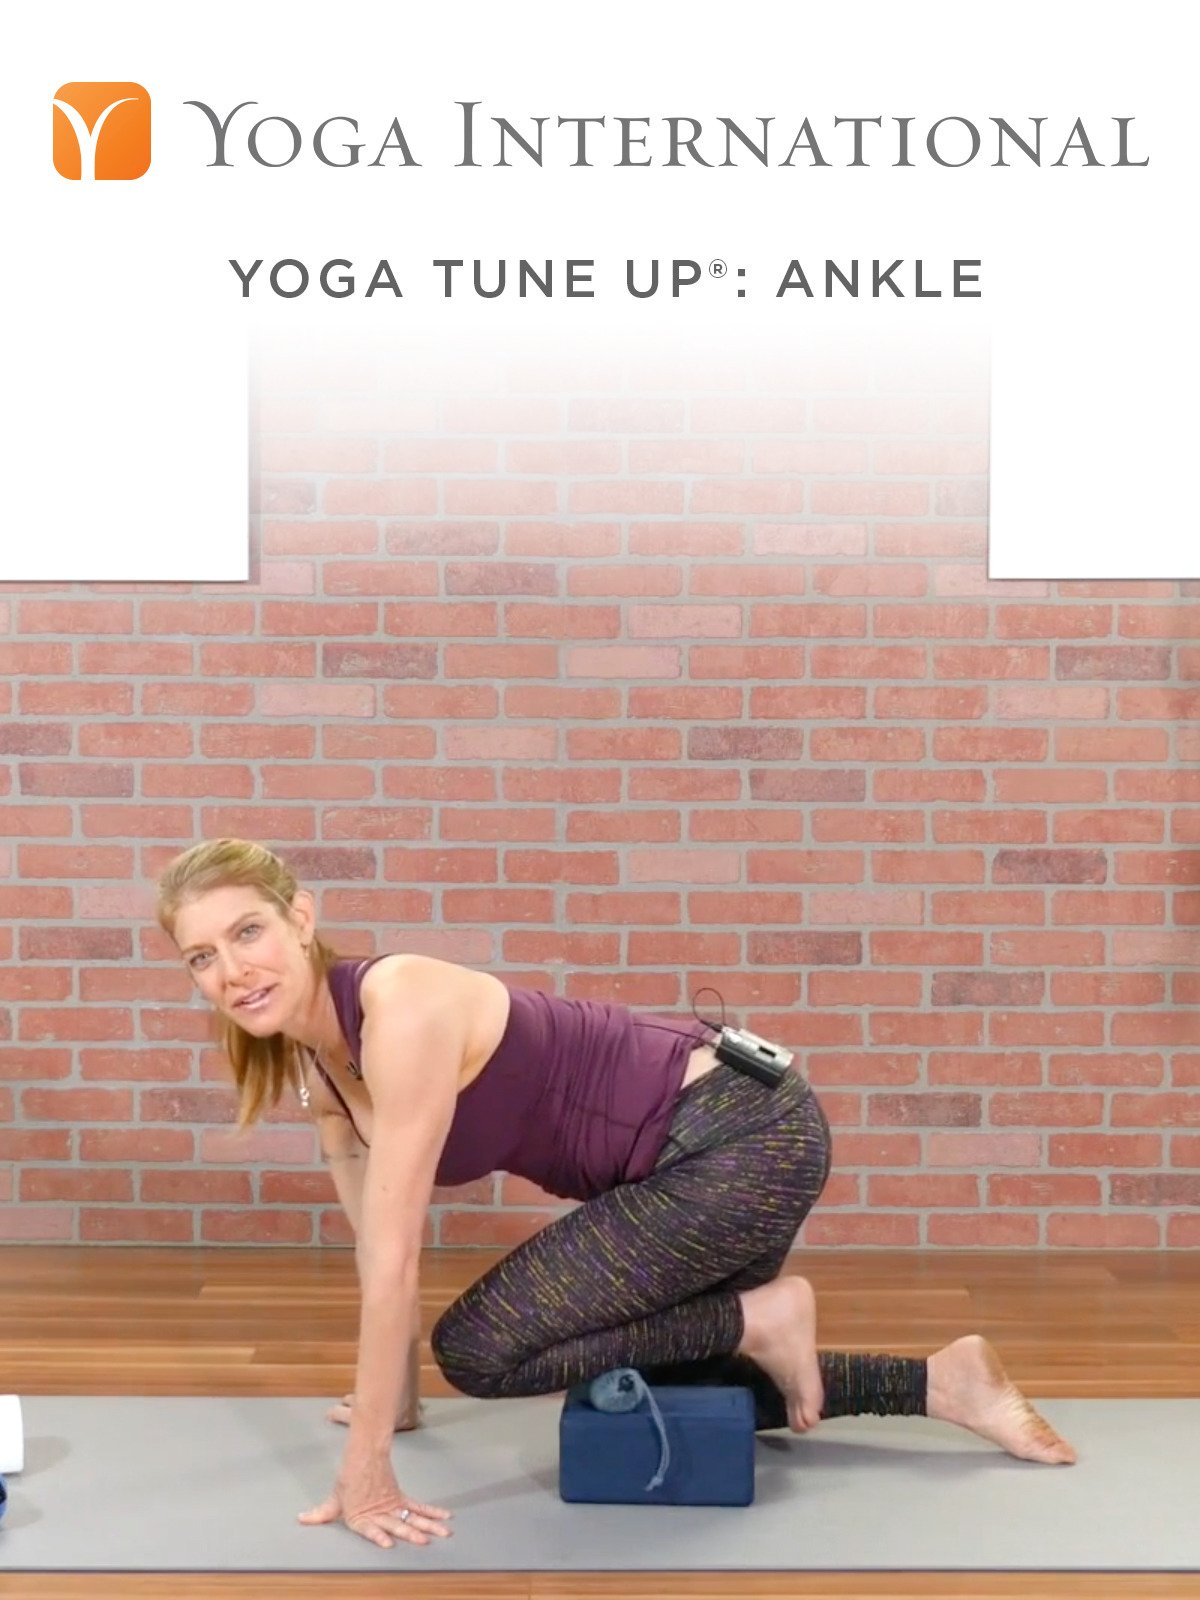 Amazon.com: Yoga Tune Up®: Ankle: Jill Miller, Yoga ...